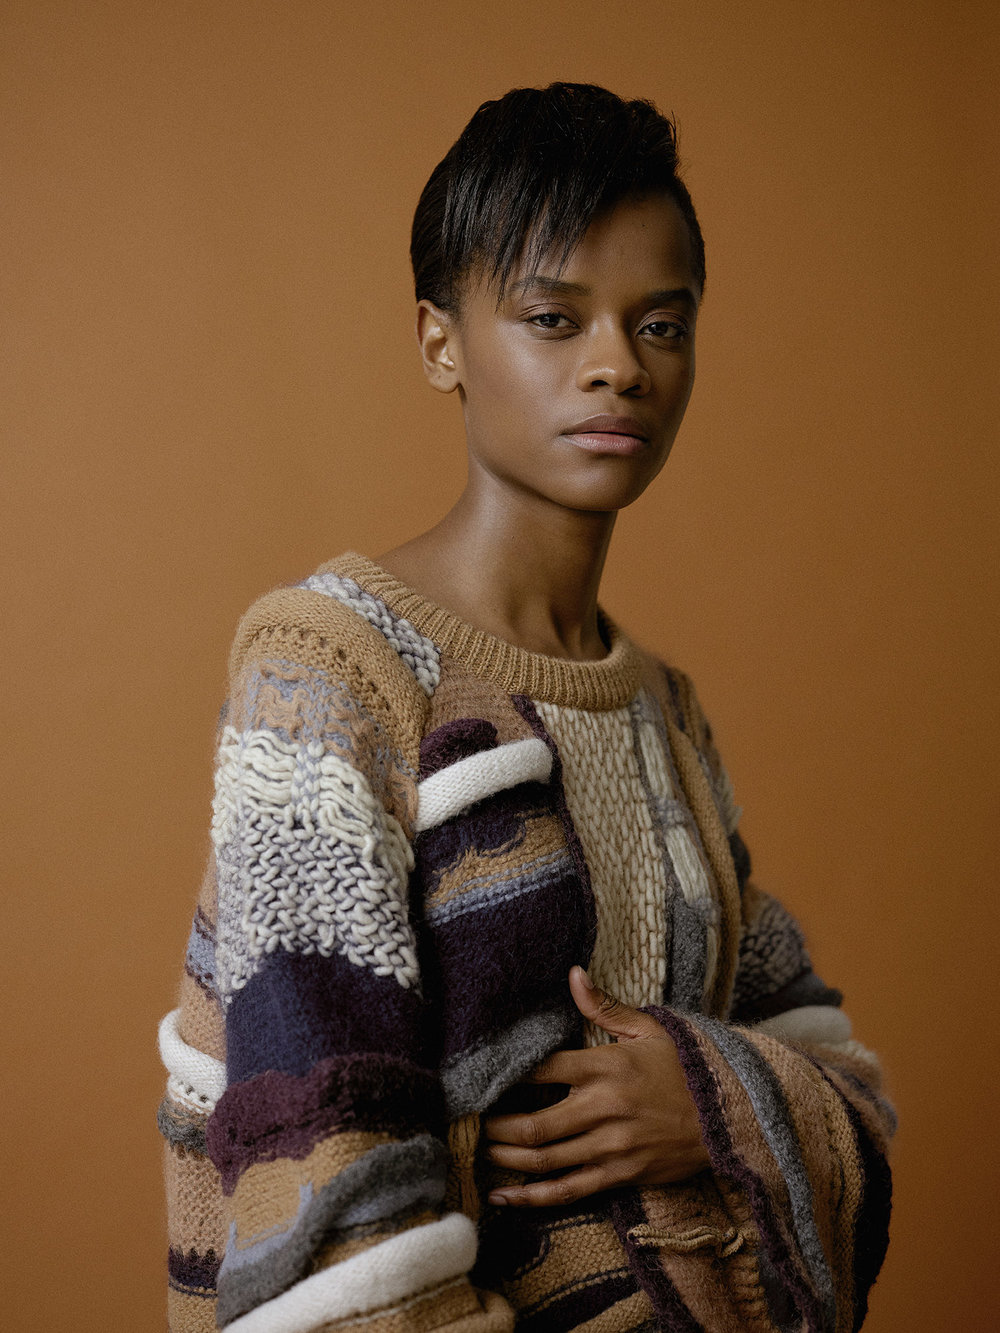 181119_ES_Letitia Wright_01_063_FINAL_RGB.jpg